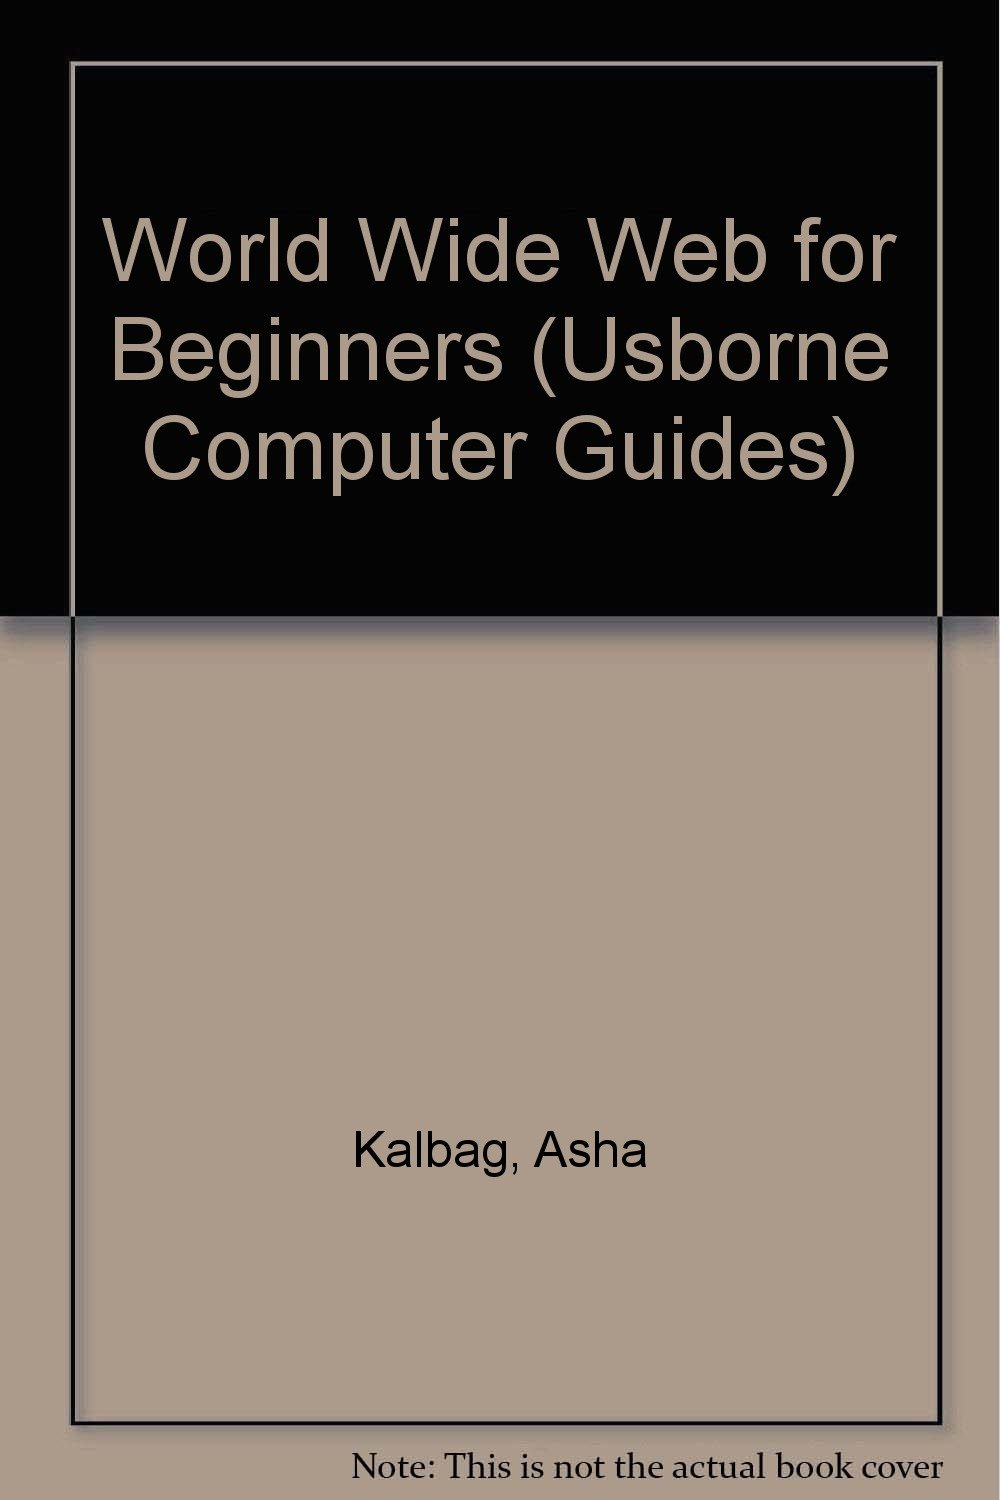 World Wide Web for Beginners (Computer Guides Series)